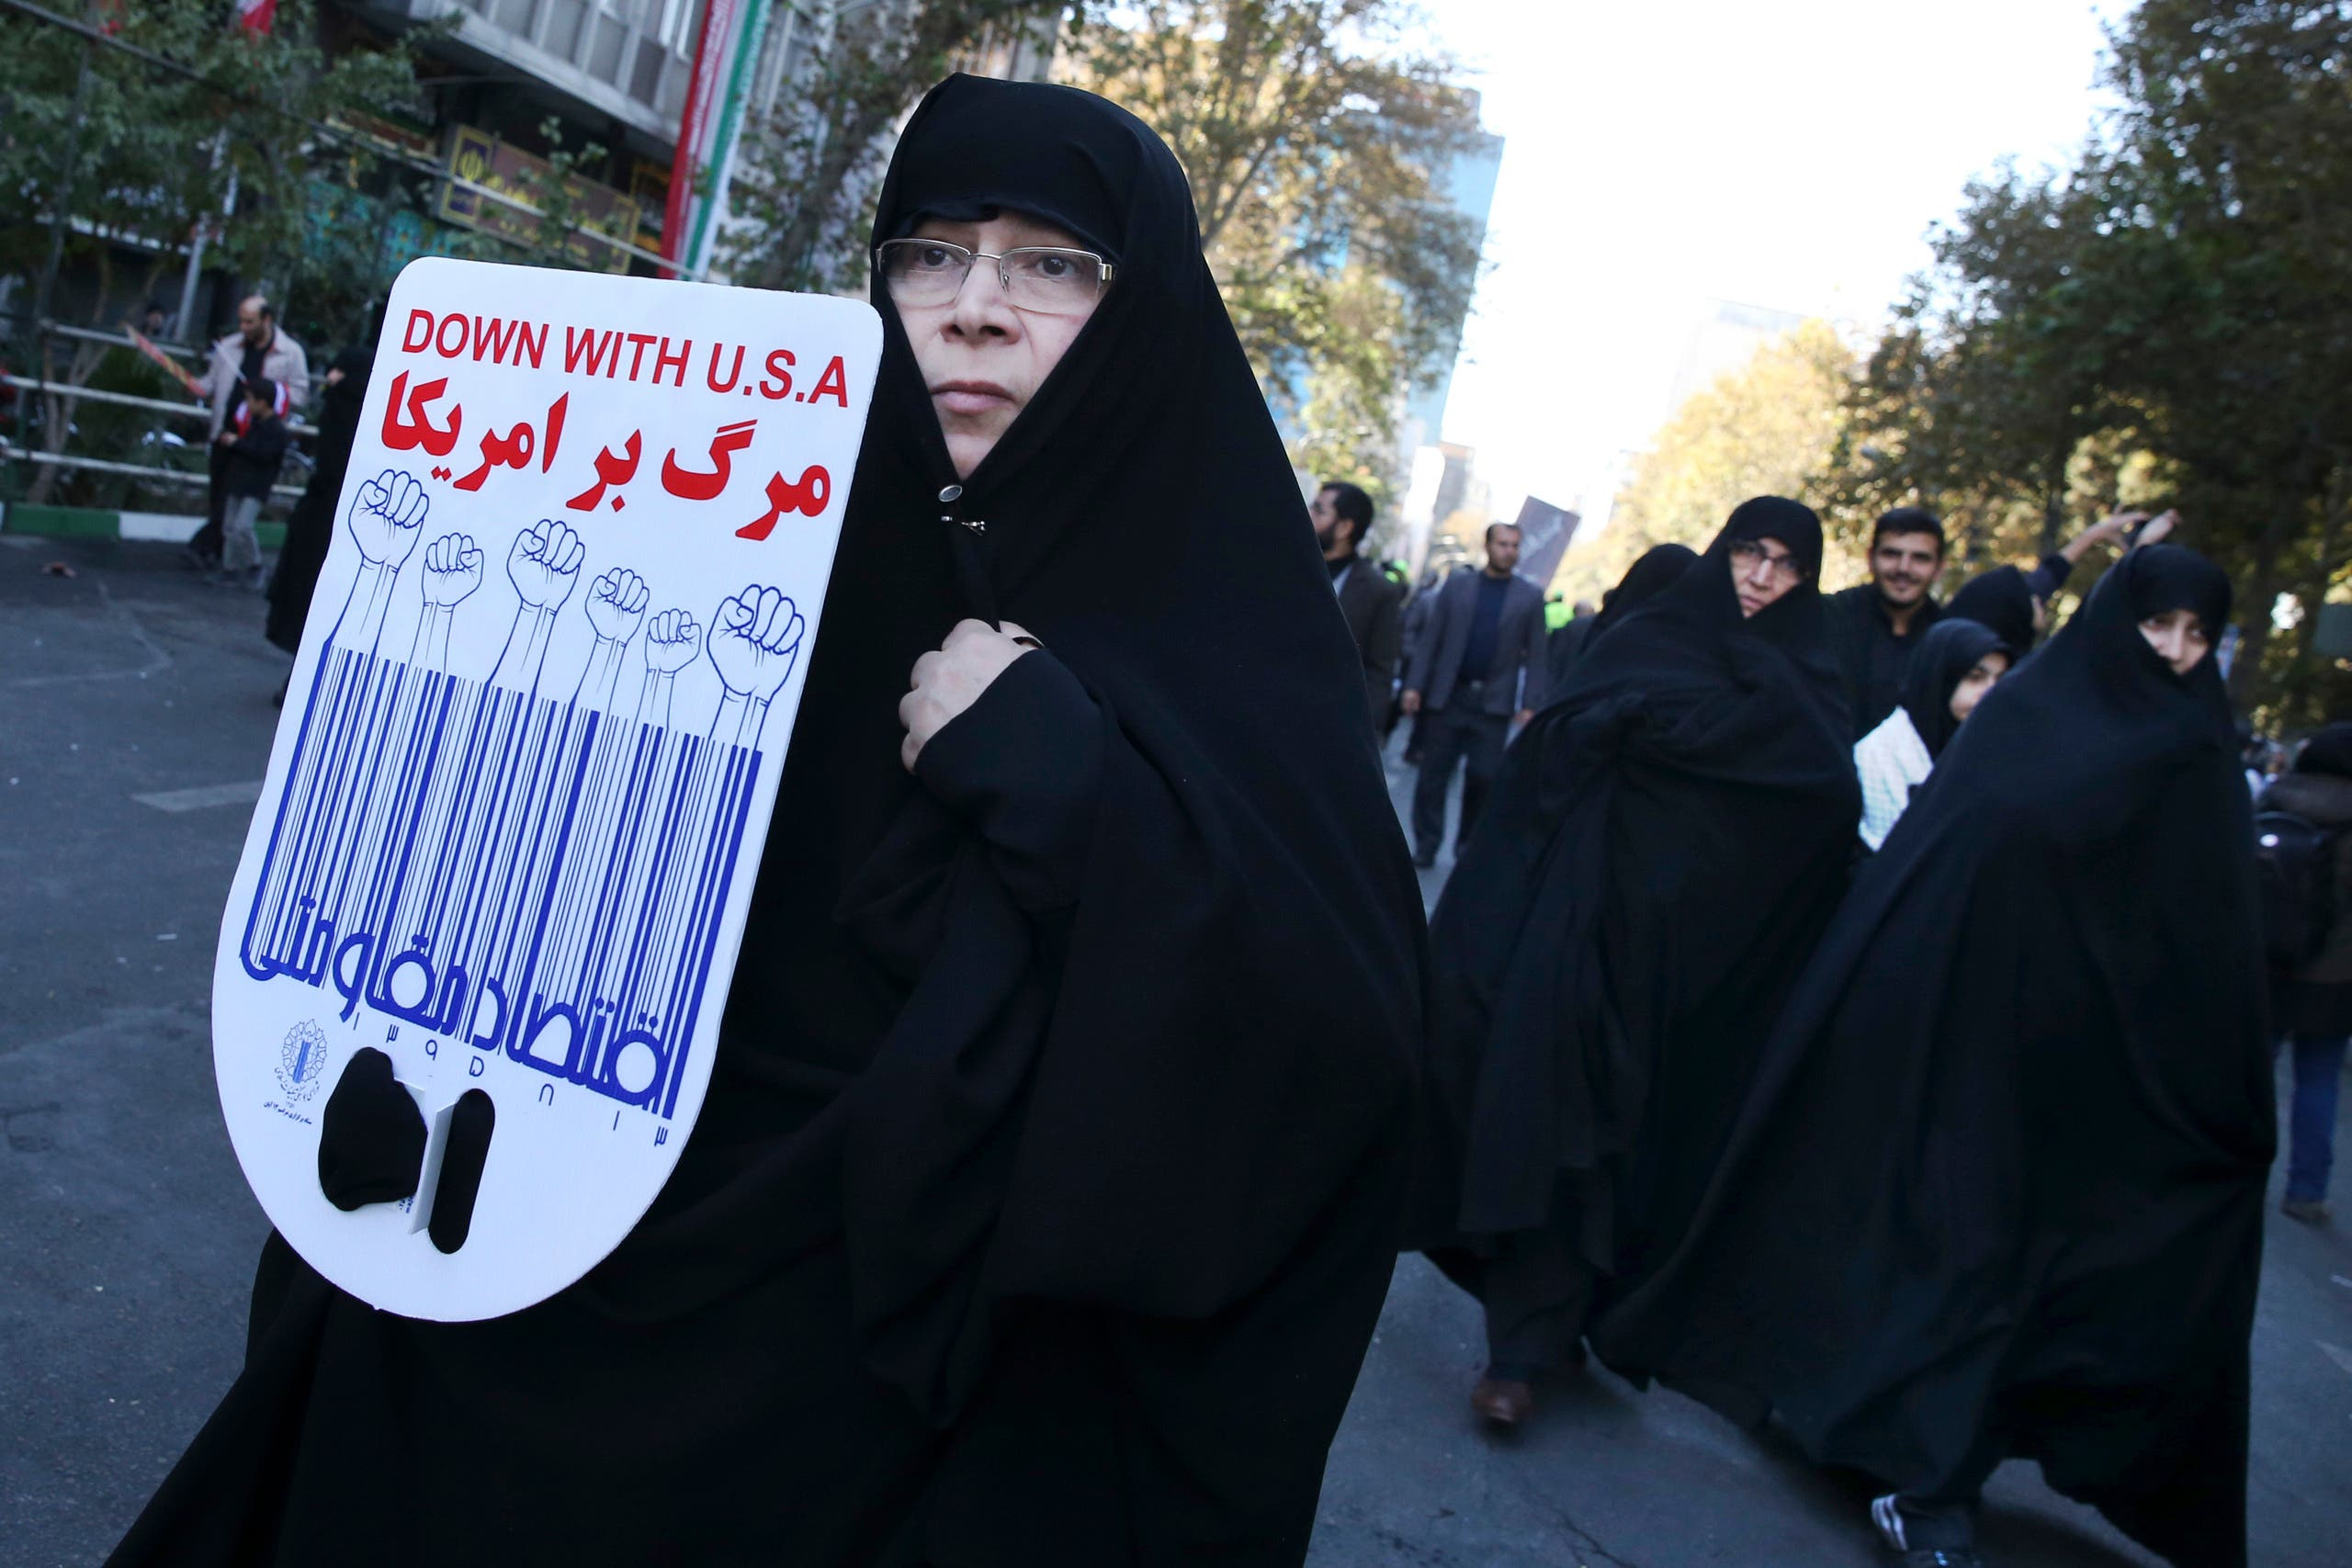 An Iranian demonstrator holds an anti-US poster in a state-organized annual rally in front of the former US Embassy in Tehran in 2016 on the 37th anniversary of the seizure of the embassy by militant Iranian students. (AP)